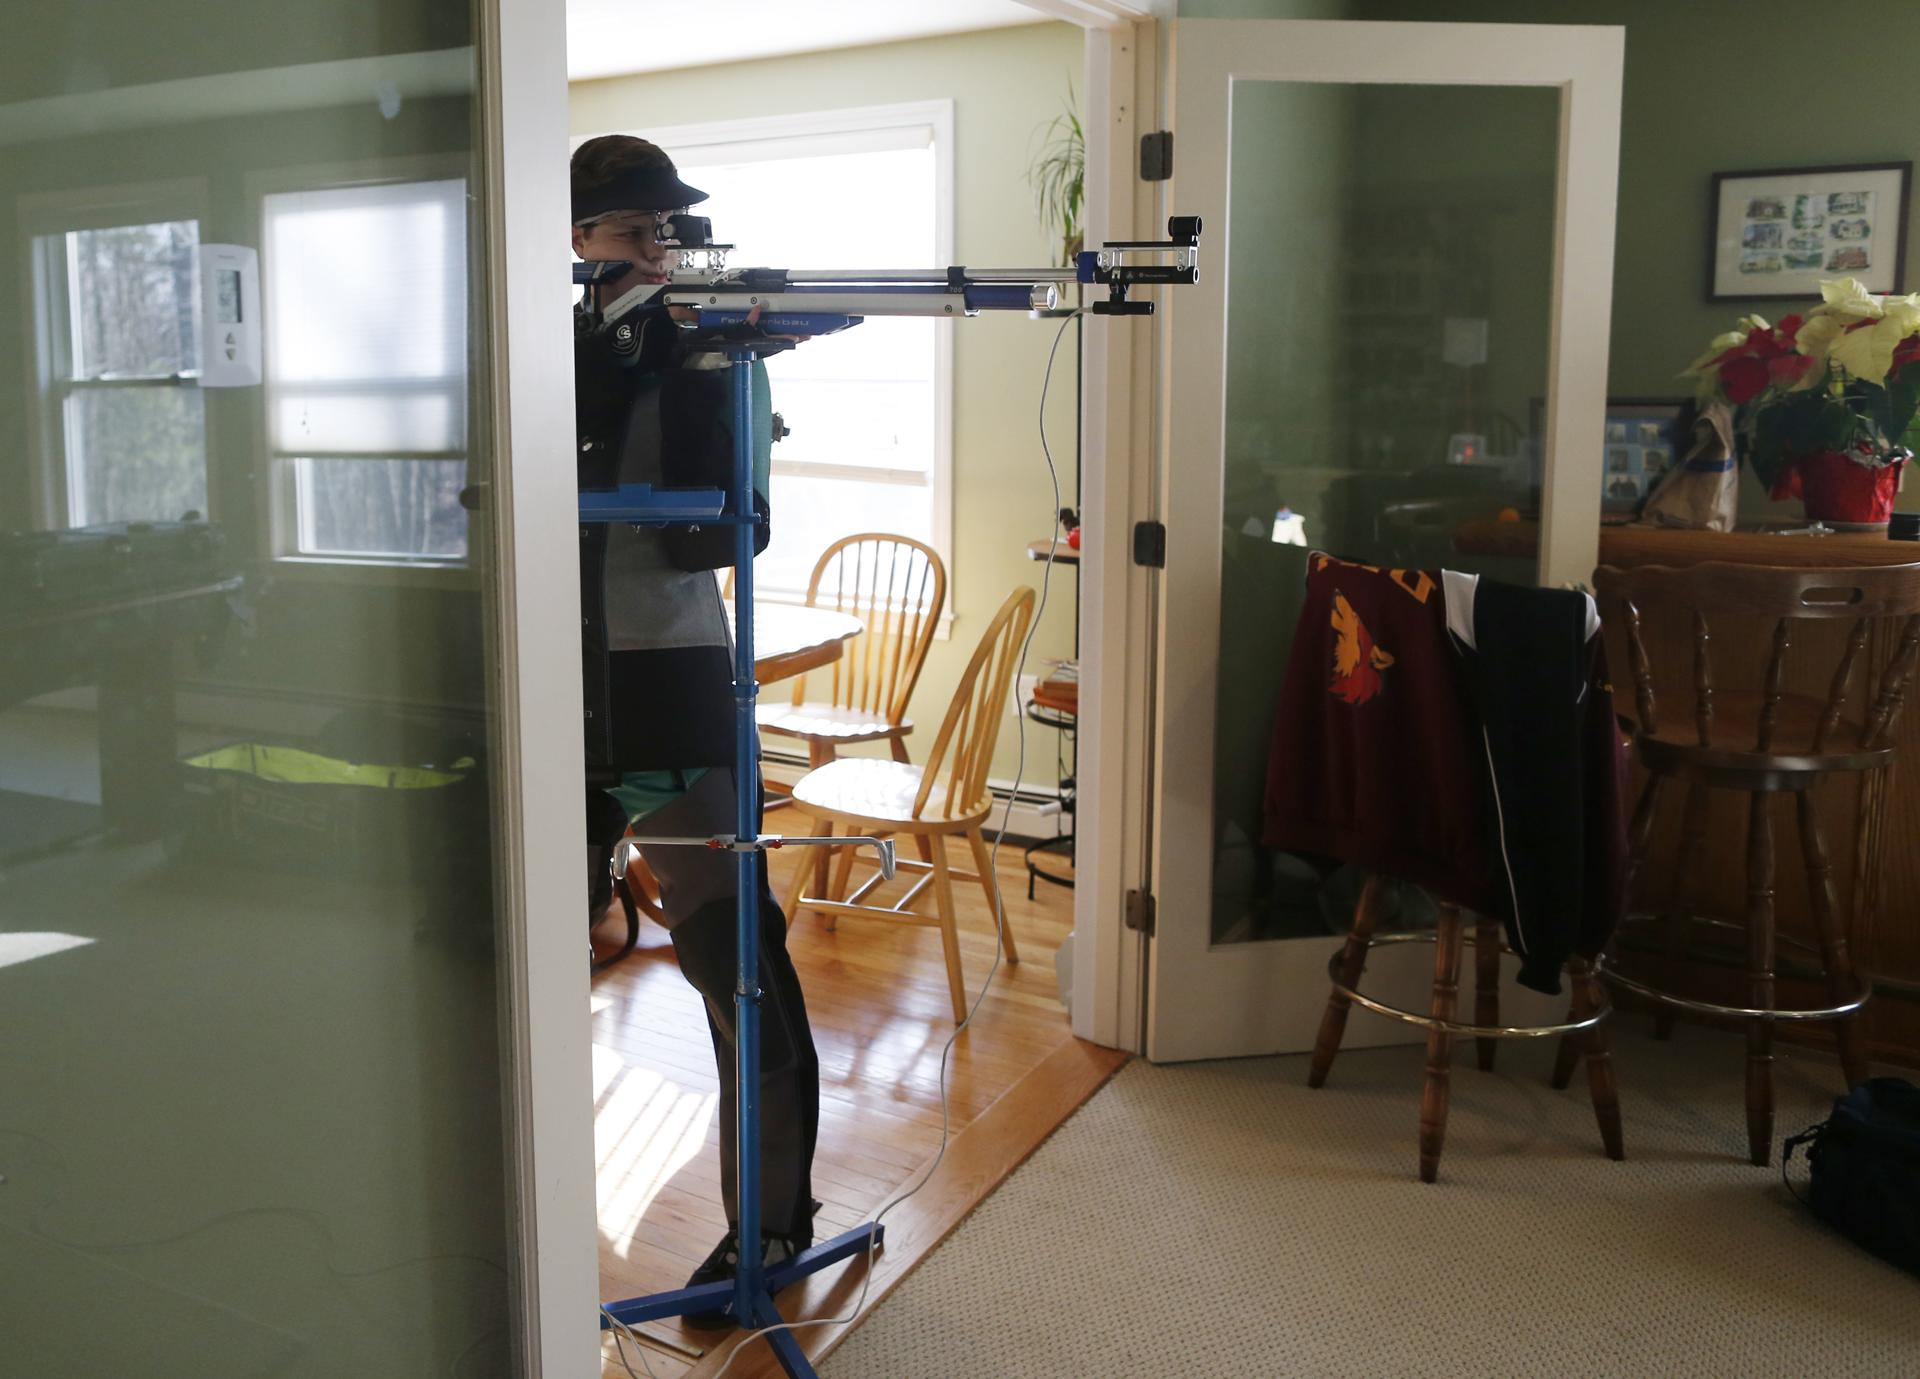 Tyler Lefebvre, 17, a member of the Taunton Marksmanship Unit, practiced shooting with an air rifle in the living room of his home in Uxbridge, Mass.